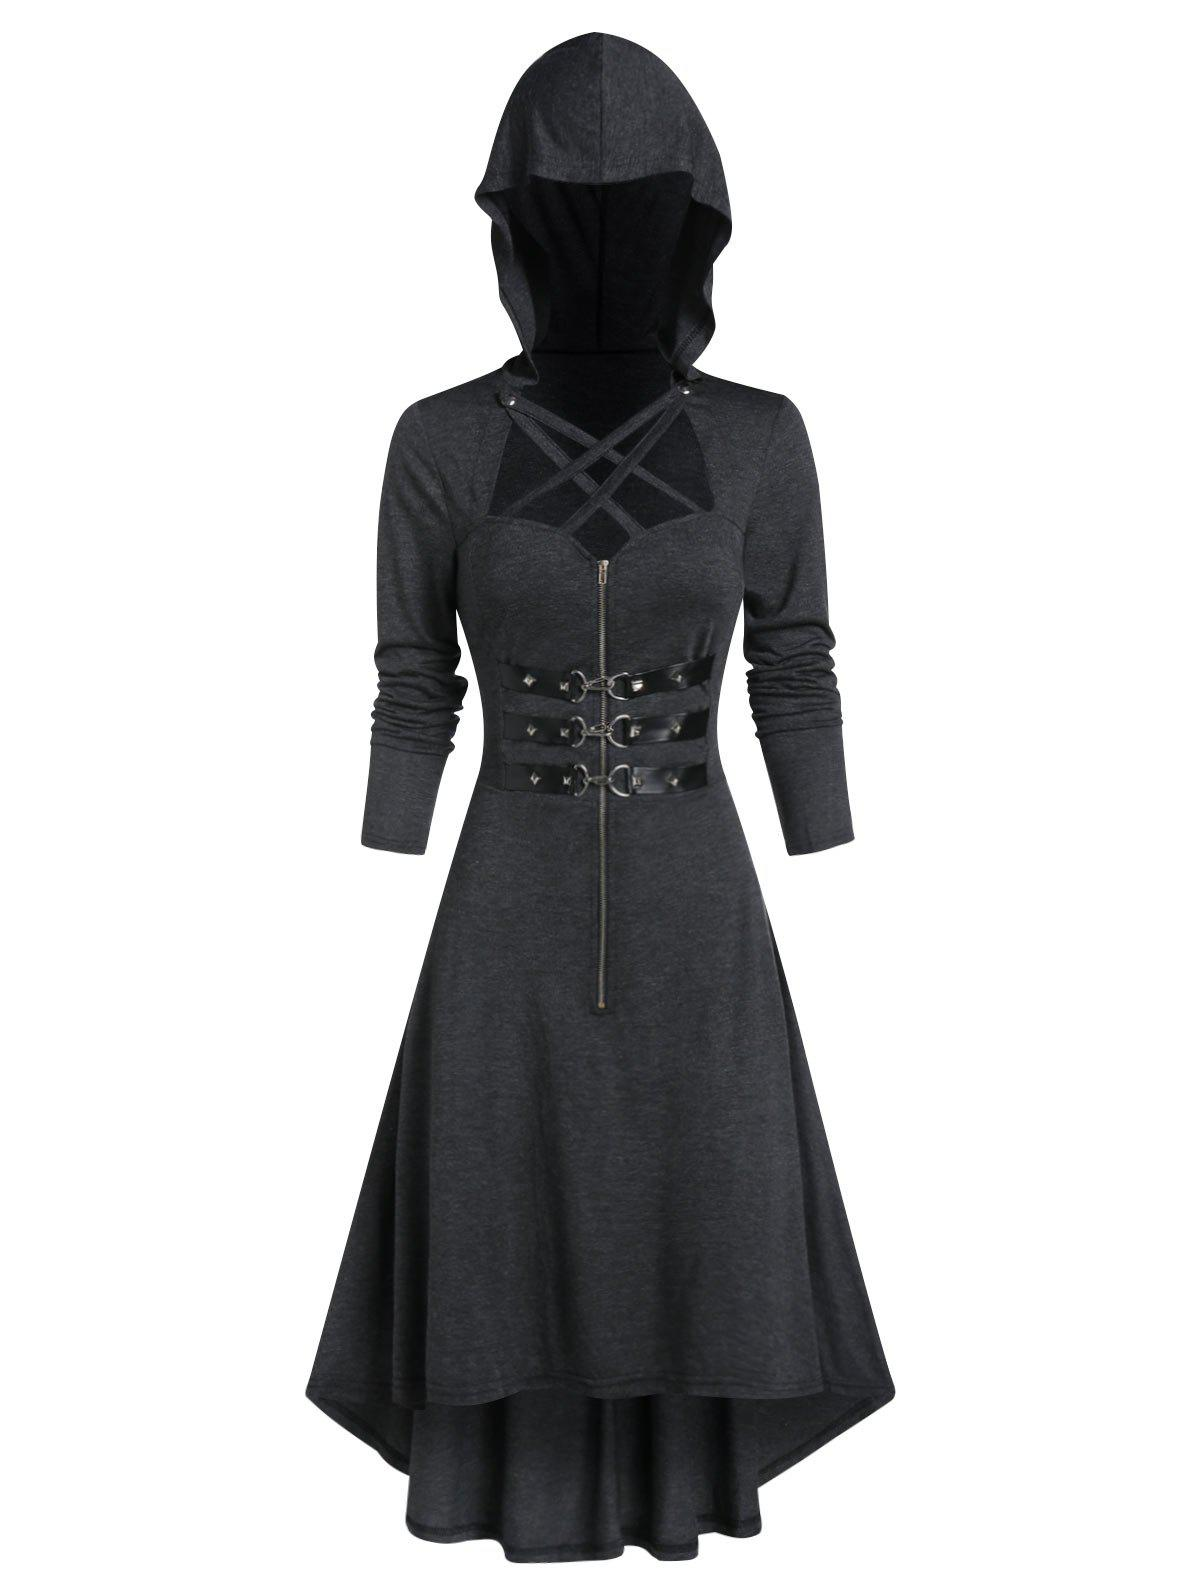 Fashion Hooded Strappy Lobster Buckle Strap High Low Gothic Dress